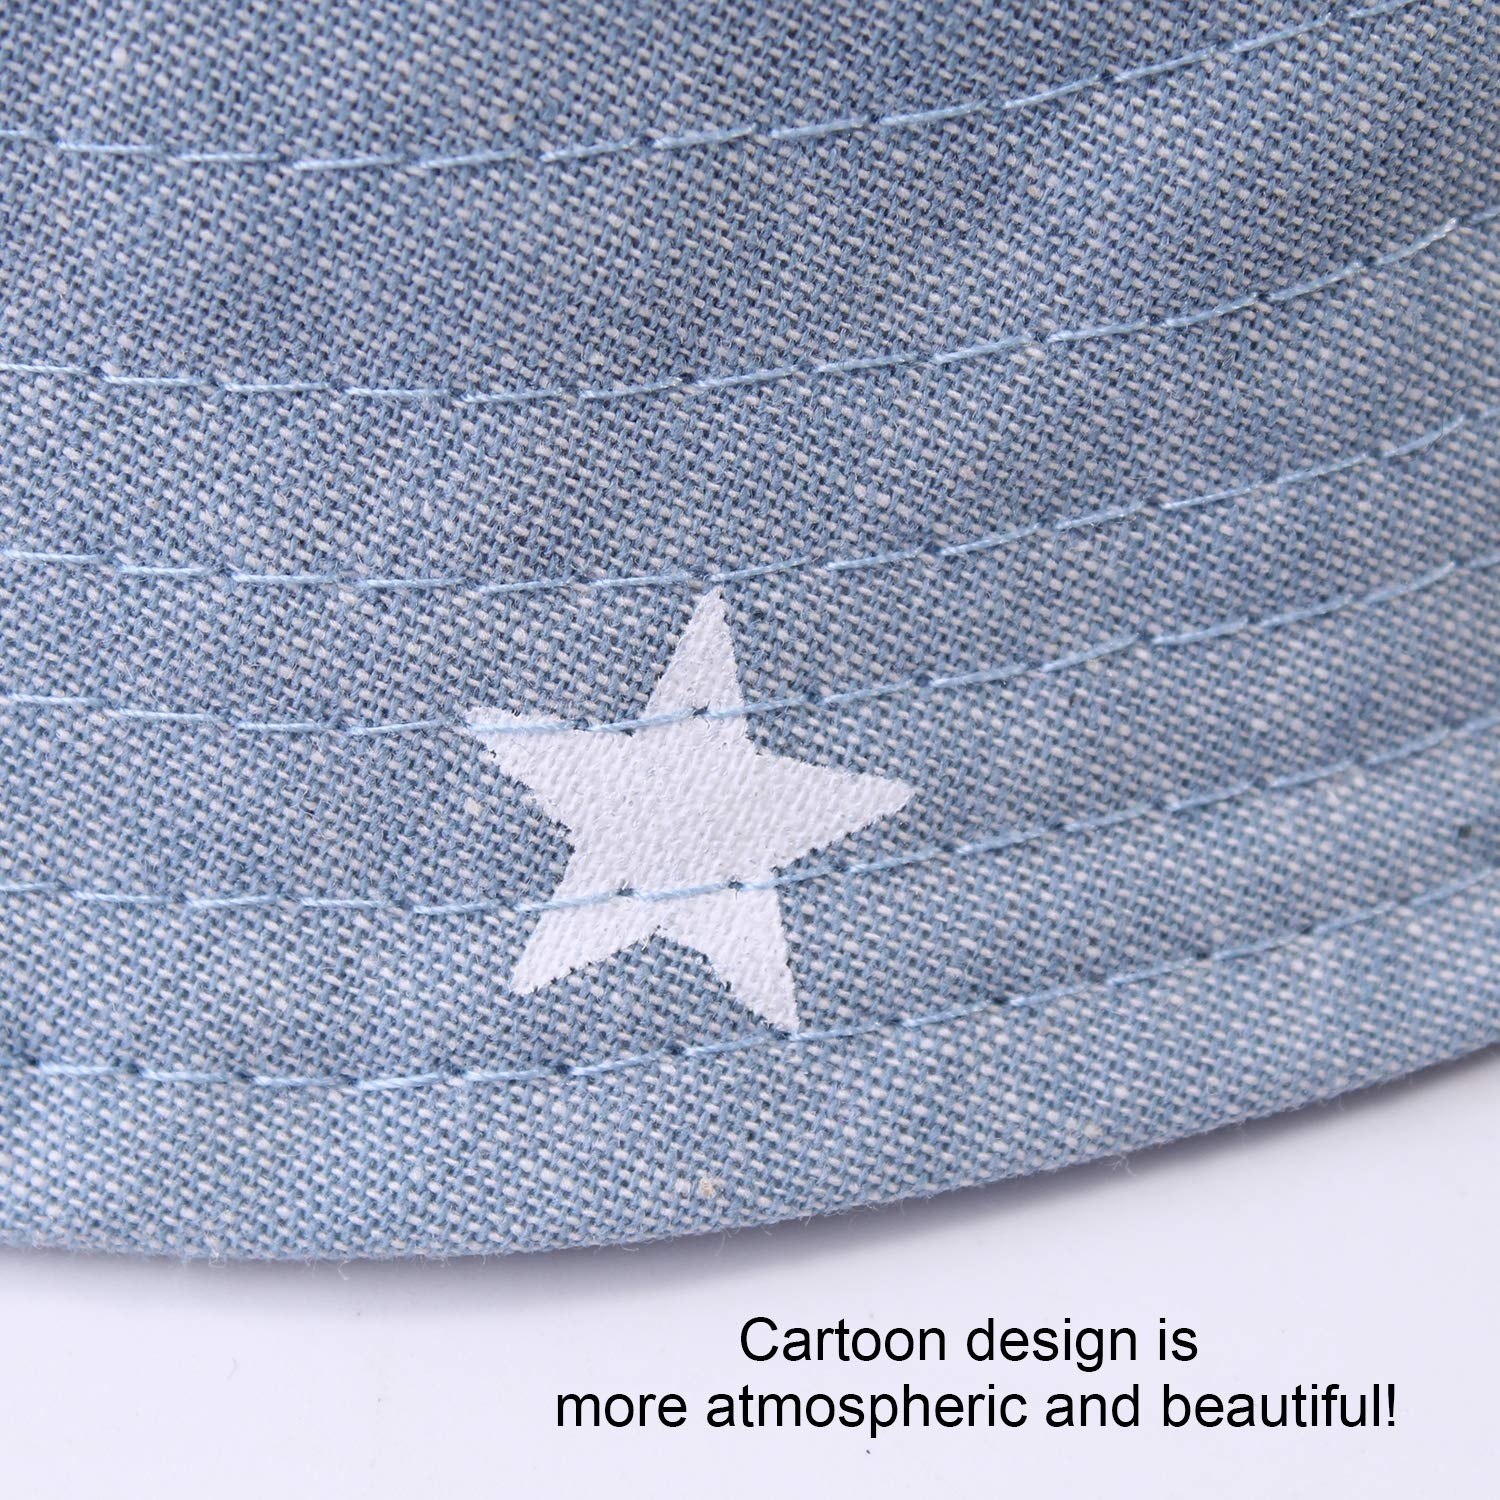 DRESHOW Baby Sun Hat Toddler Sun Protection Animal Cap Unisex Summer Bucket Hat with Chin Strap UPF 50+